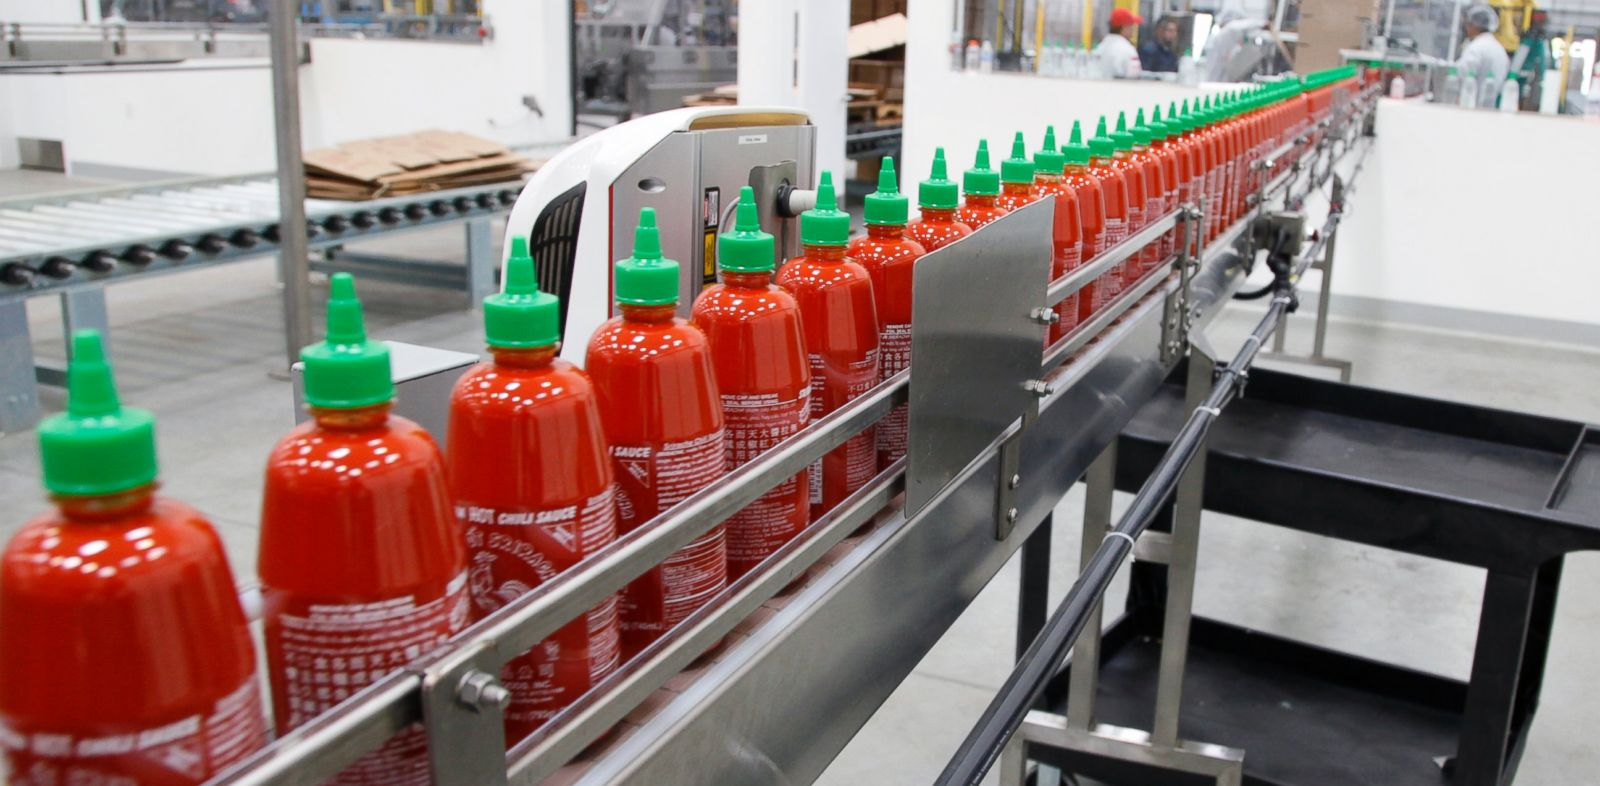 PHOTO: Sriracha chili sauce moves along a production line during at the Huy Fong Foods factory in Irwindale, Calif., Oct. 29, 2013.